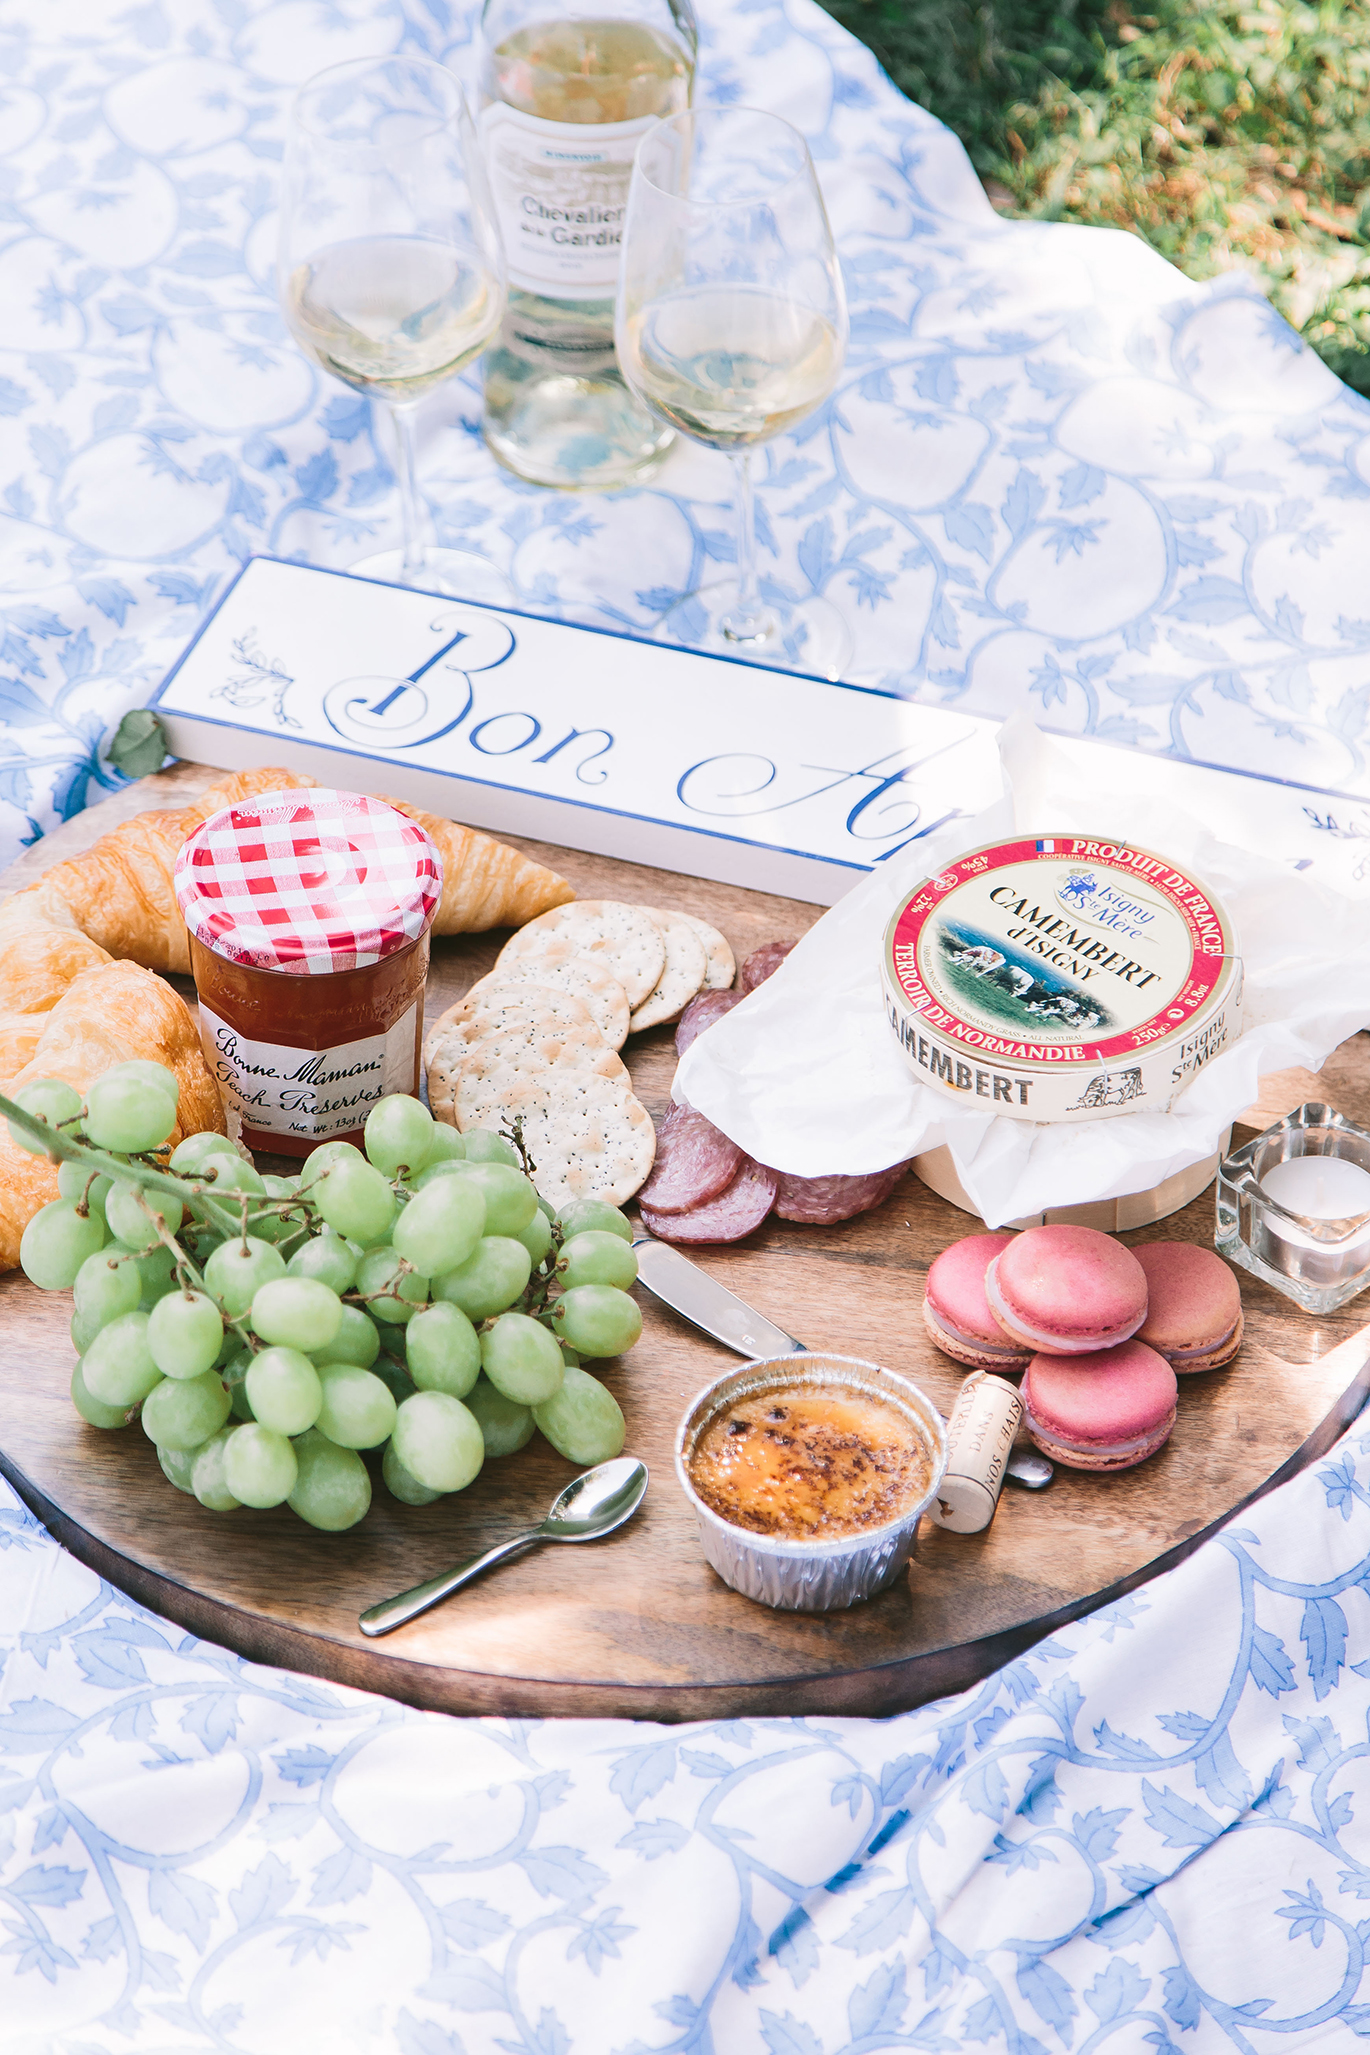 Charcuterie and cheese board ideas